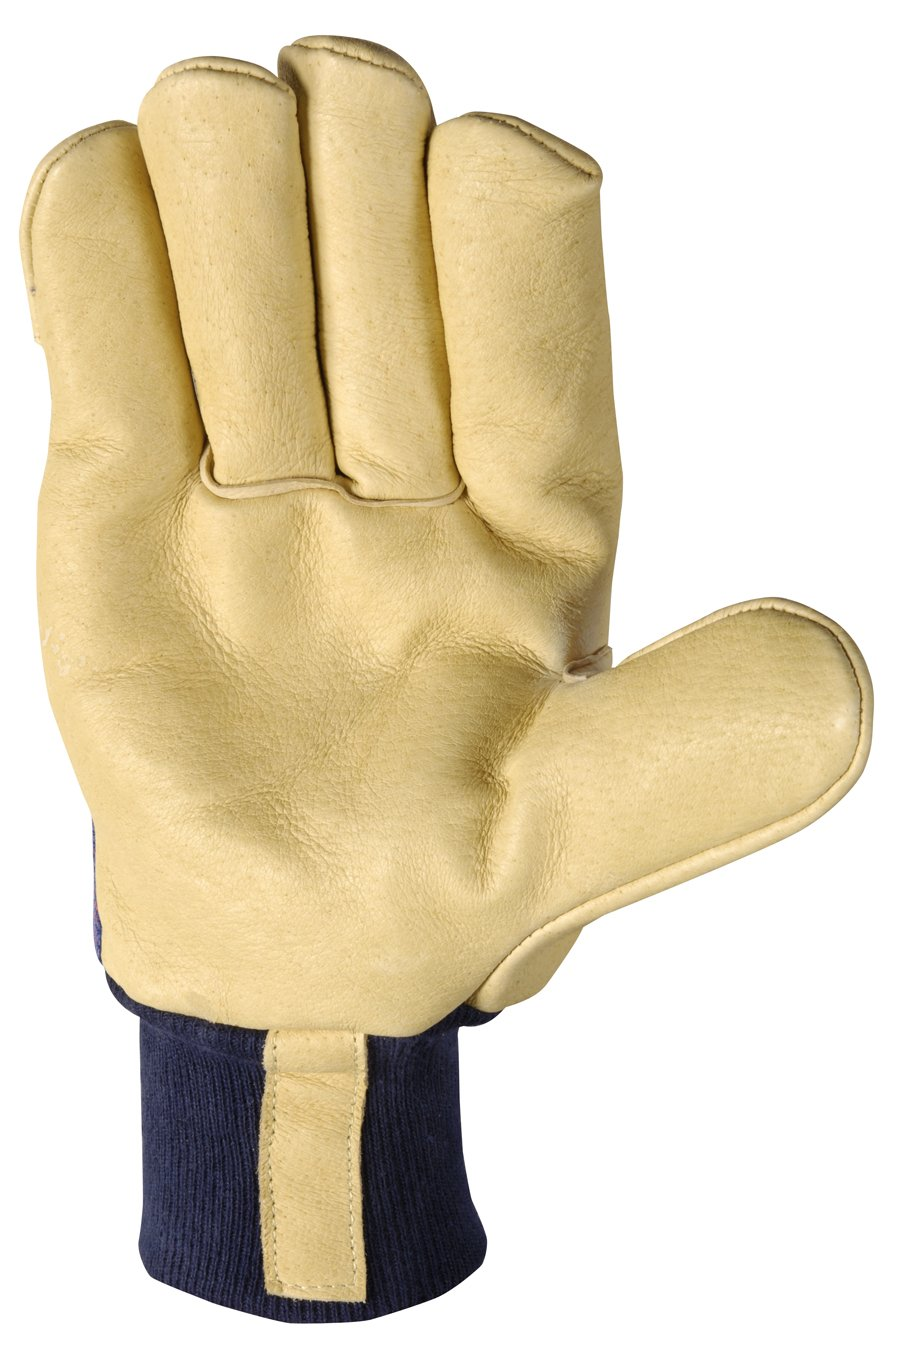 Insulated leather work gloves amazon - Wells Lamont Palm Leather Work Gloves Insulated Grain Pigskin Extra Large 5127xl Insulated Work Gloves Amazon Com